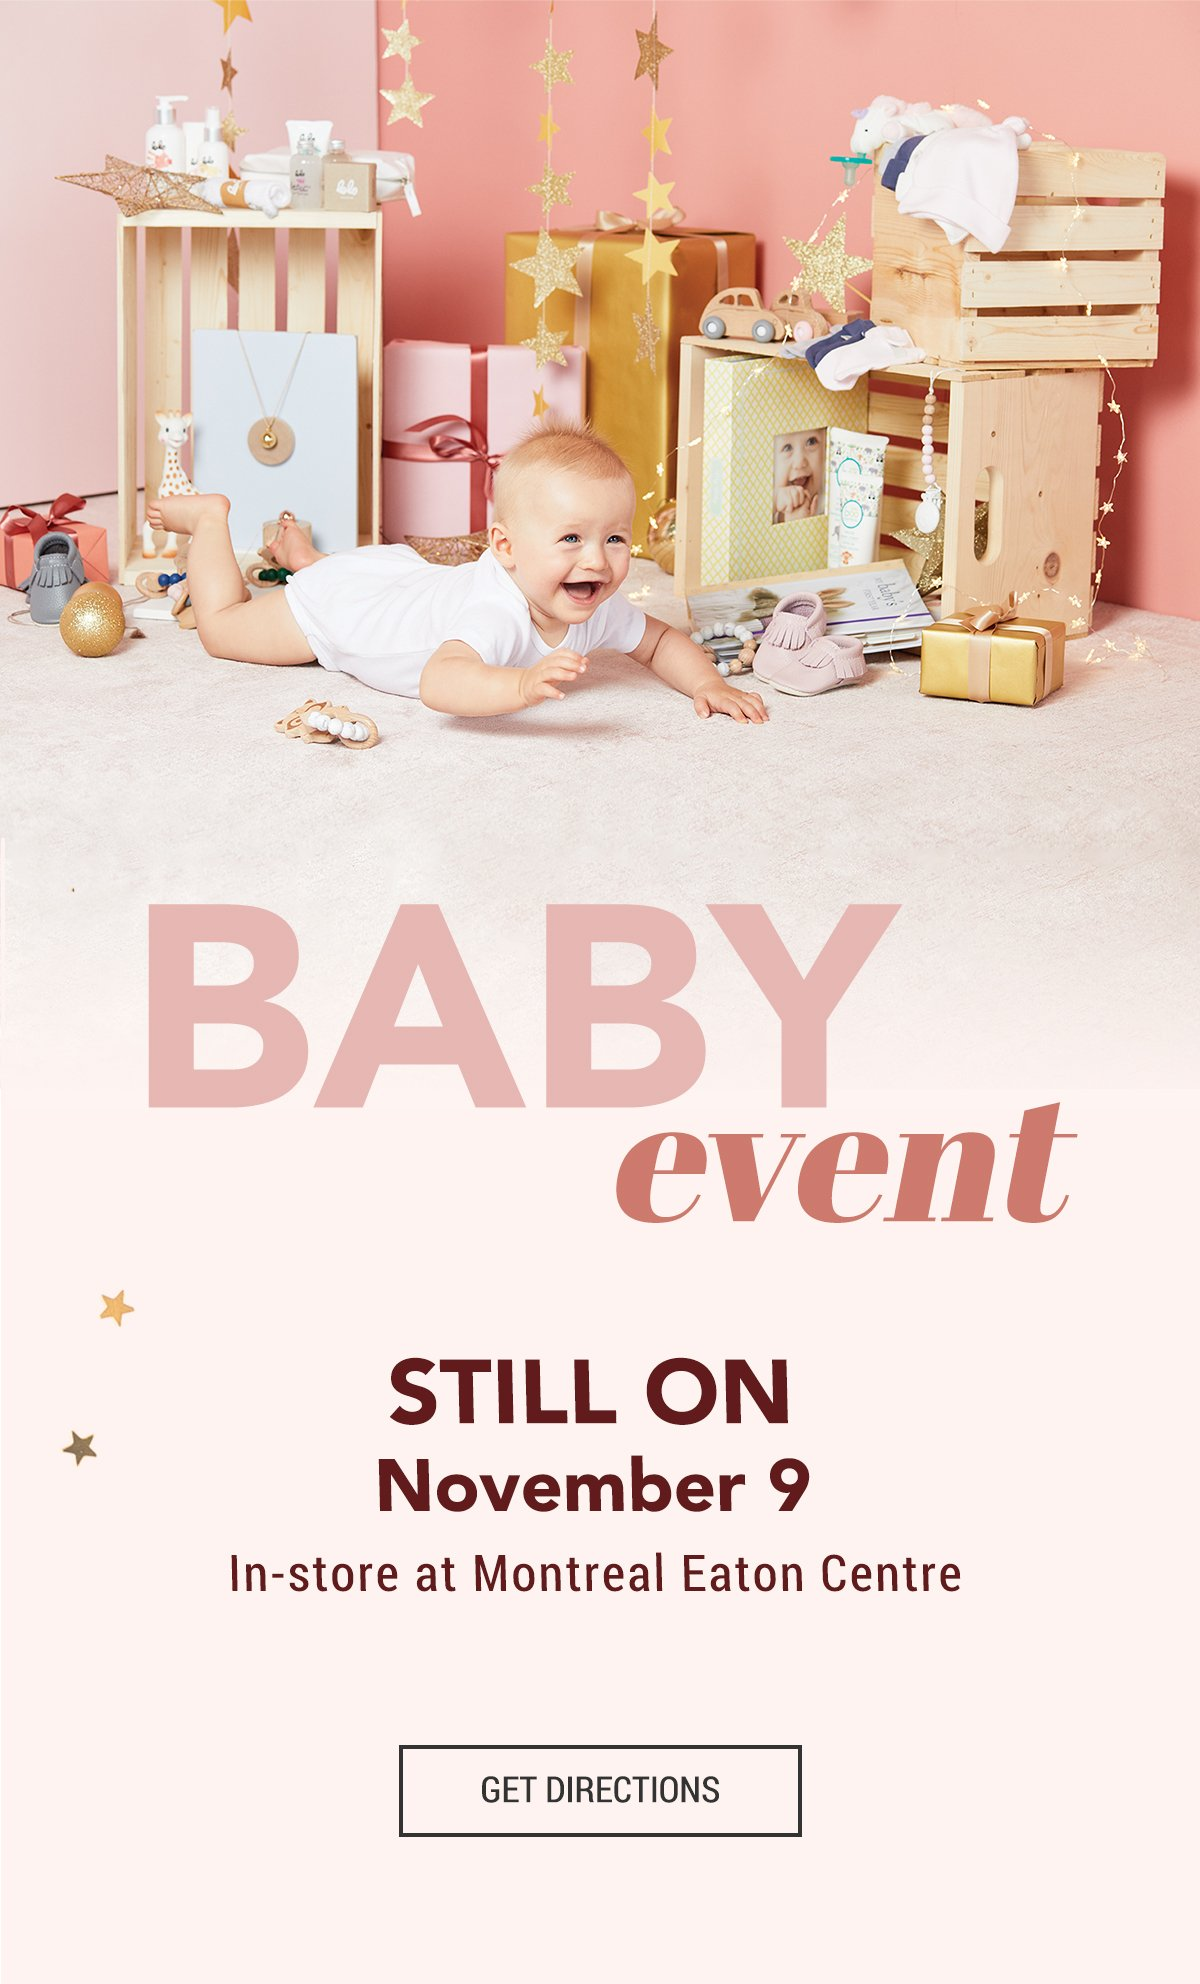 Baby Event Still on, November 9 In-store at Montreal Eaton Centre